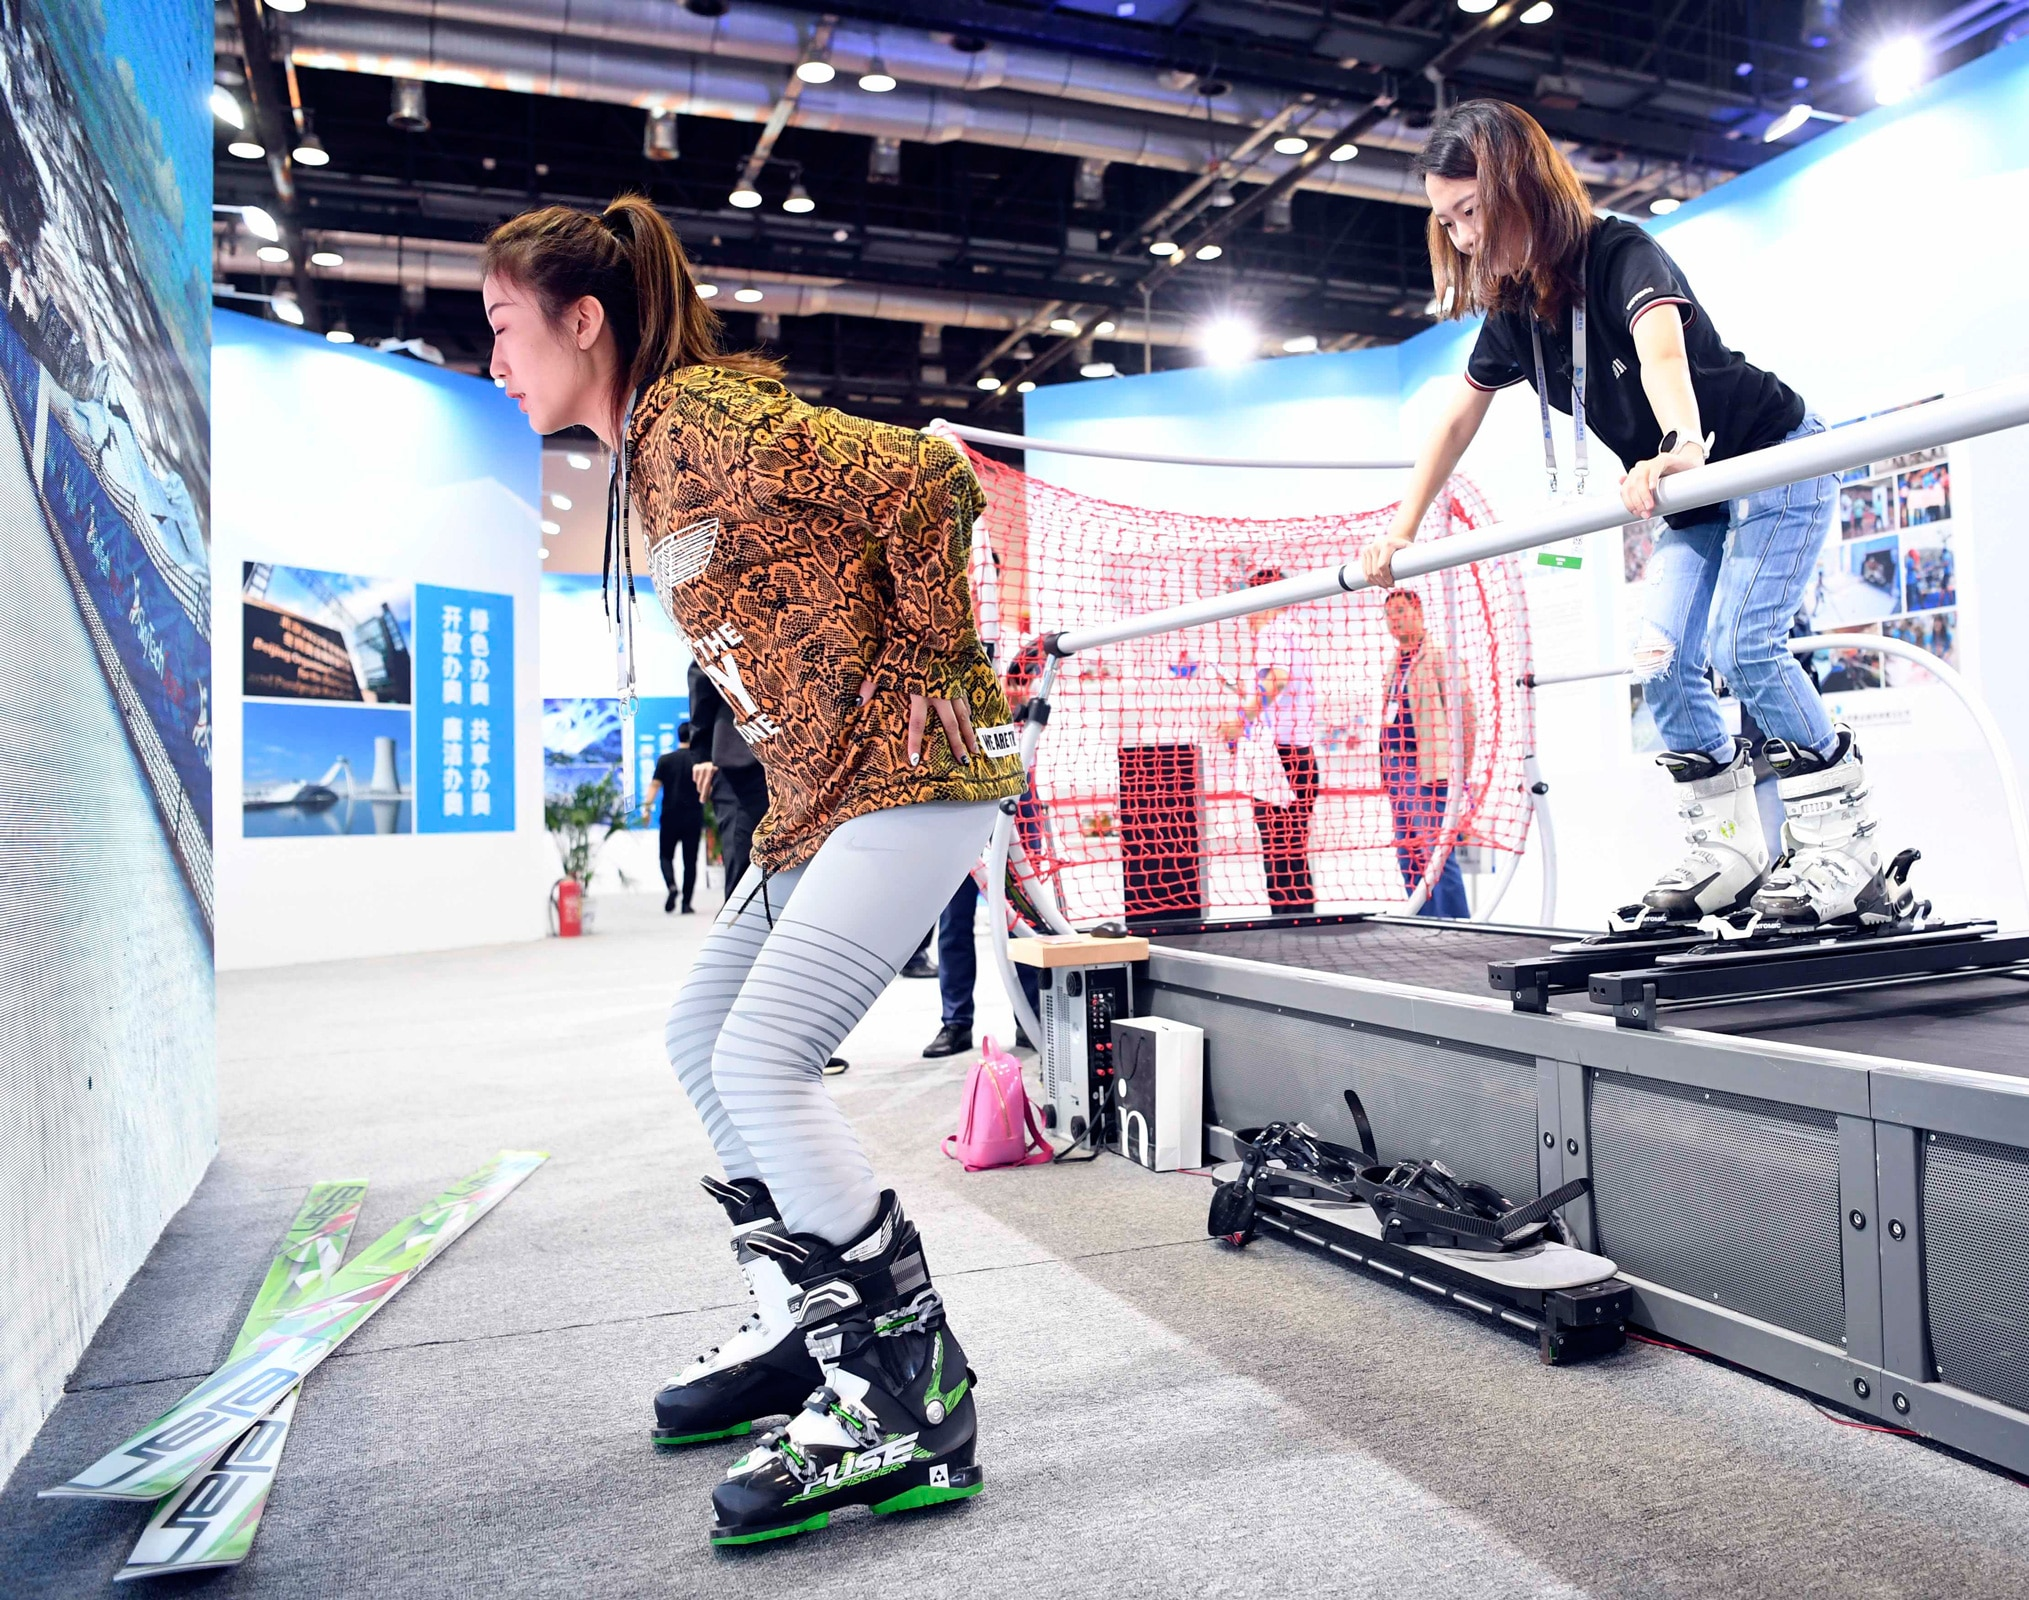 2018 World Winter Sports Beijing Expo